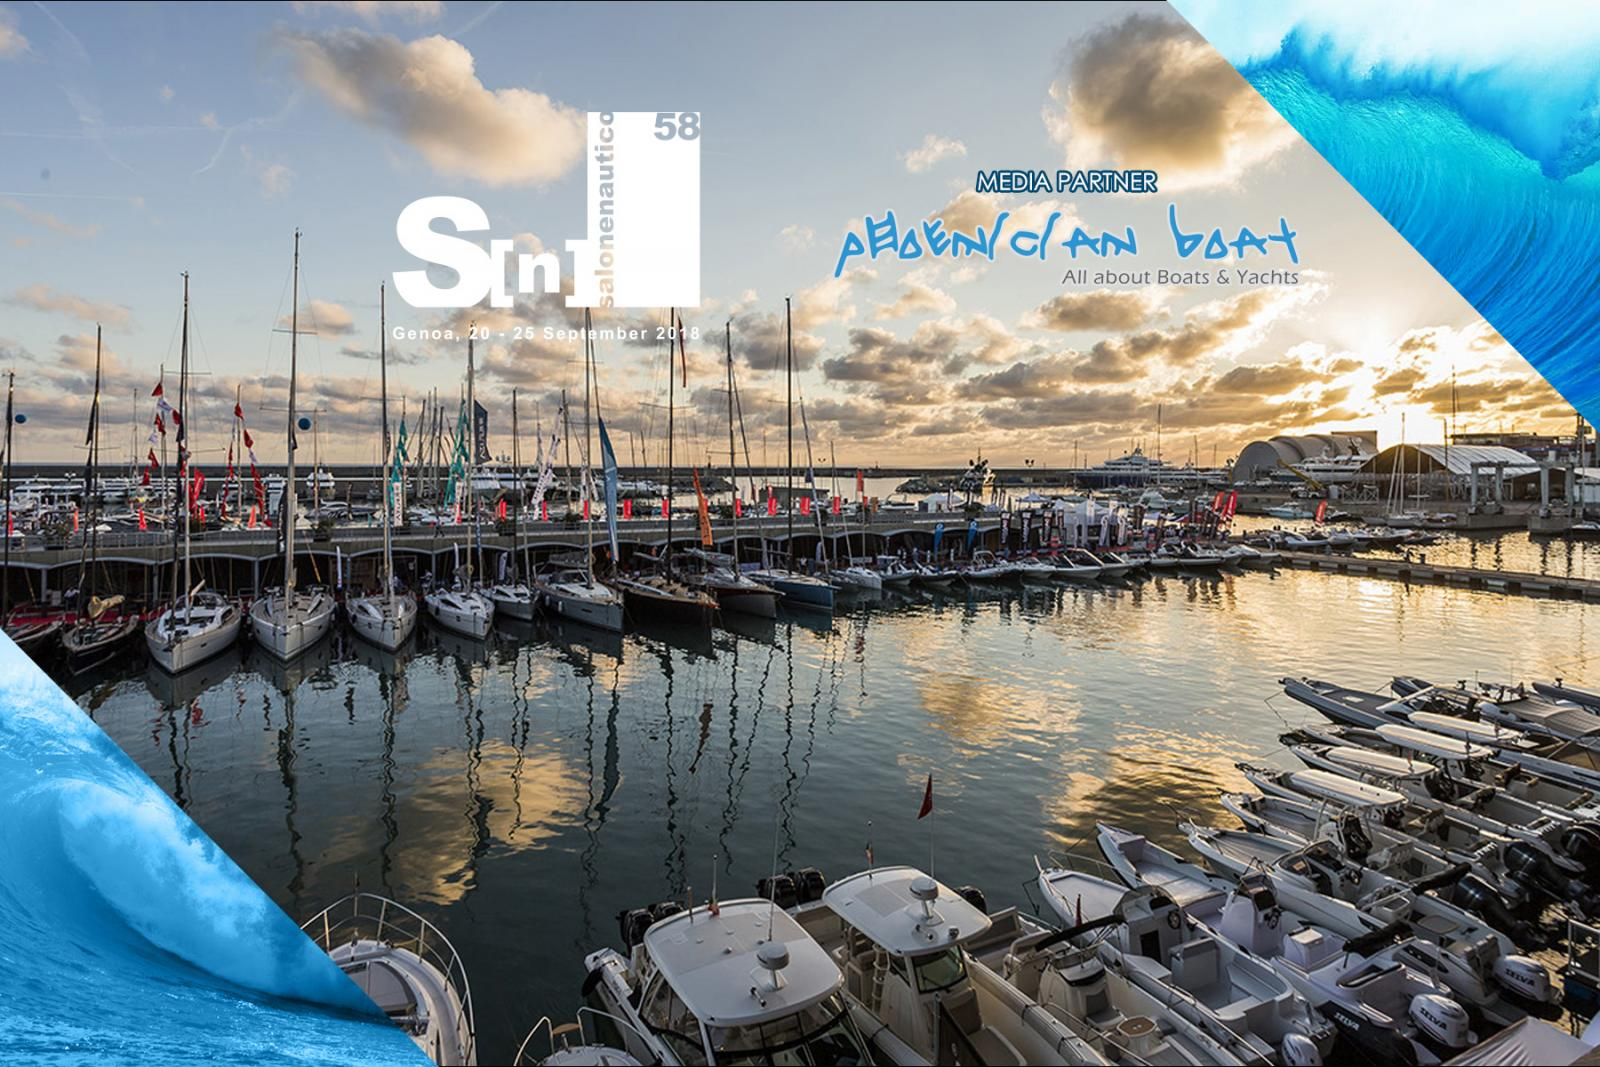 Phoenician Boat is the Media Partner for Genoa Boat Show